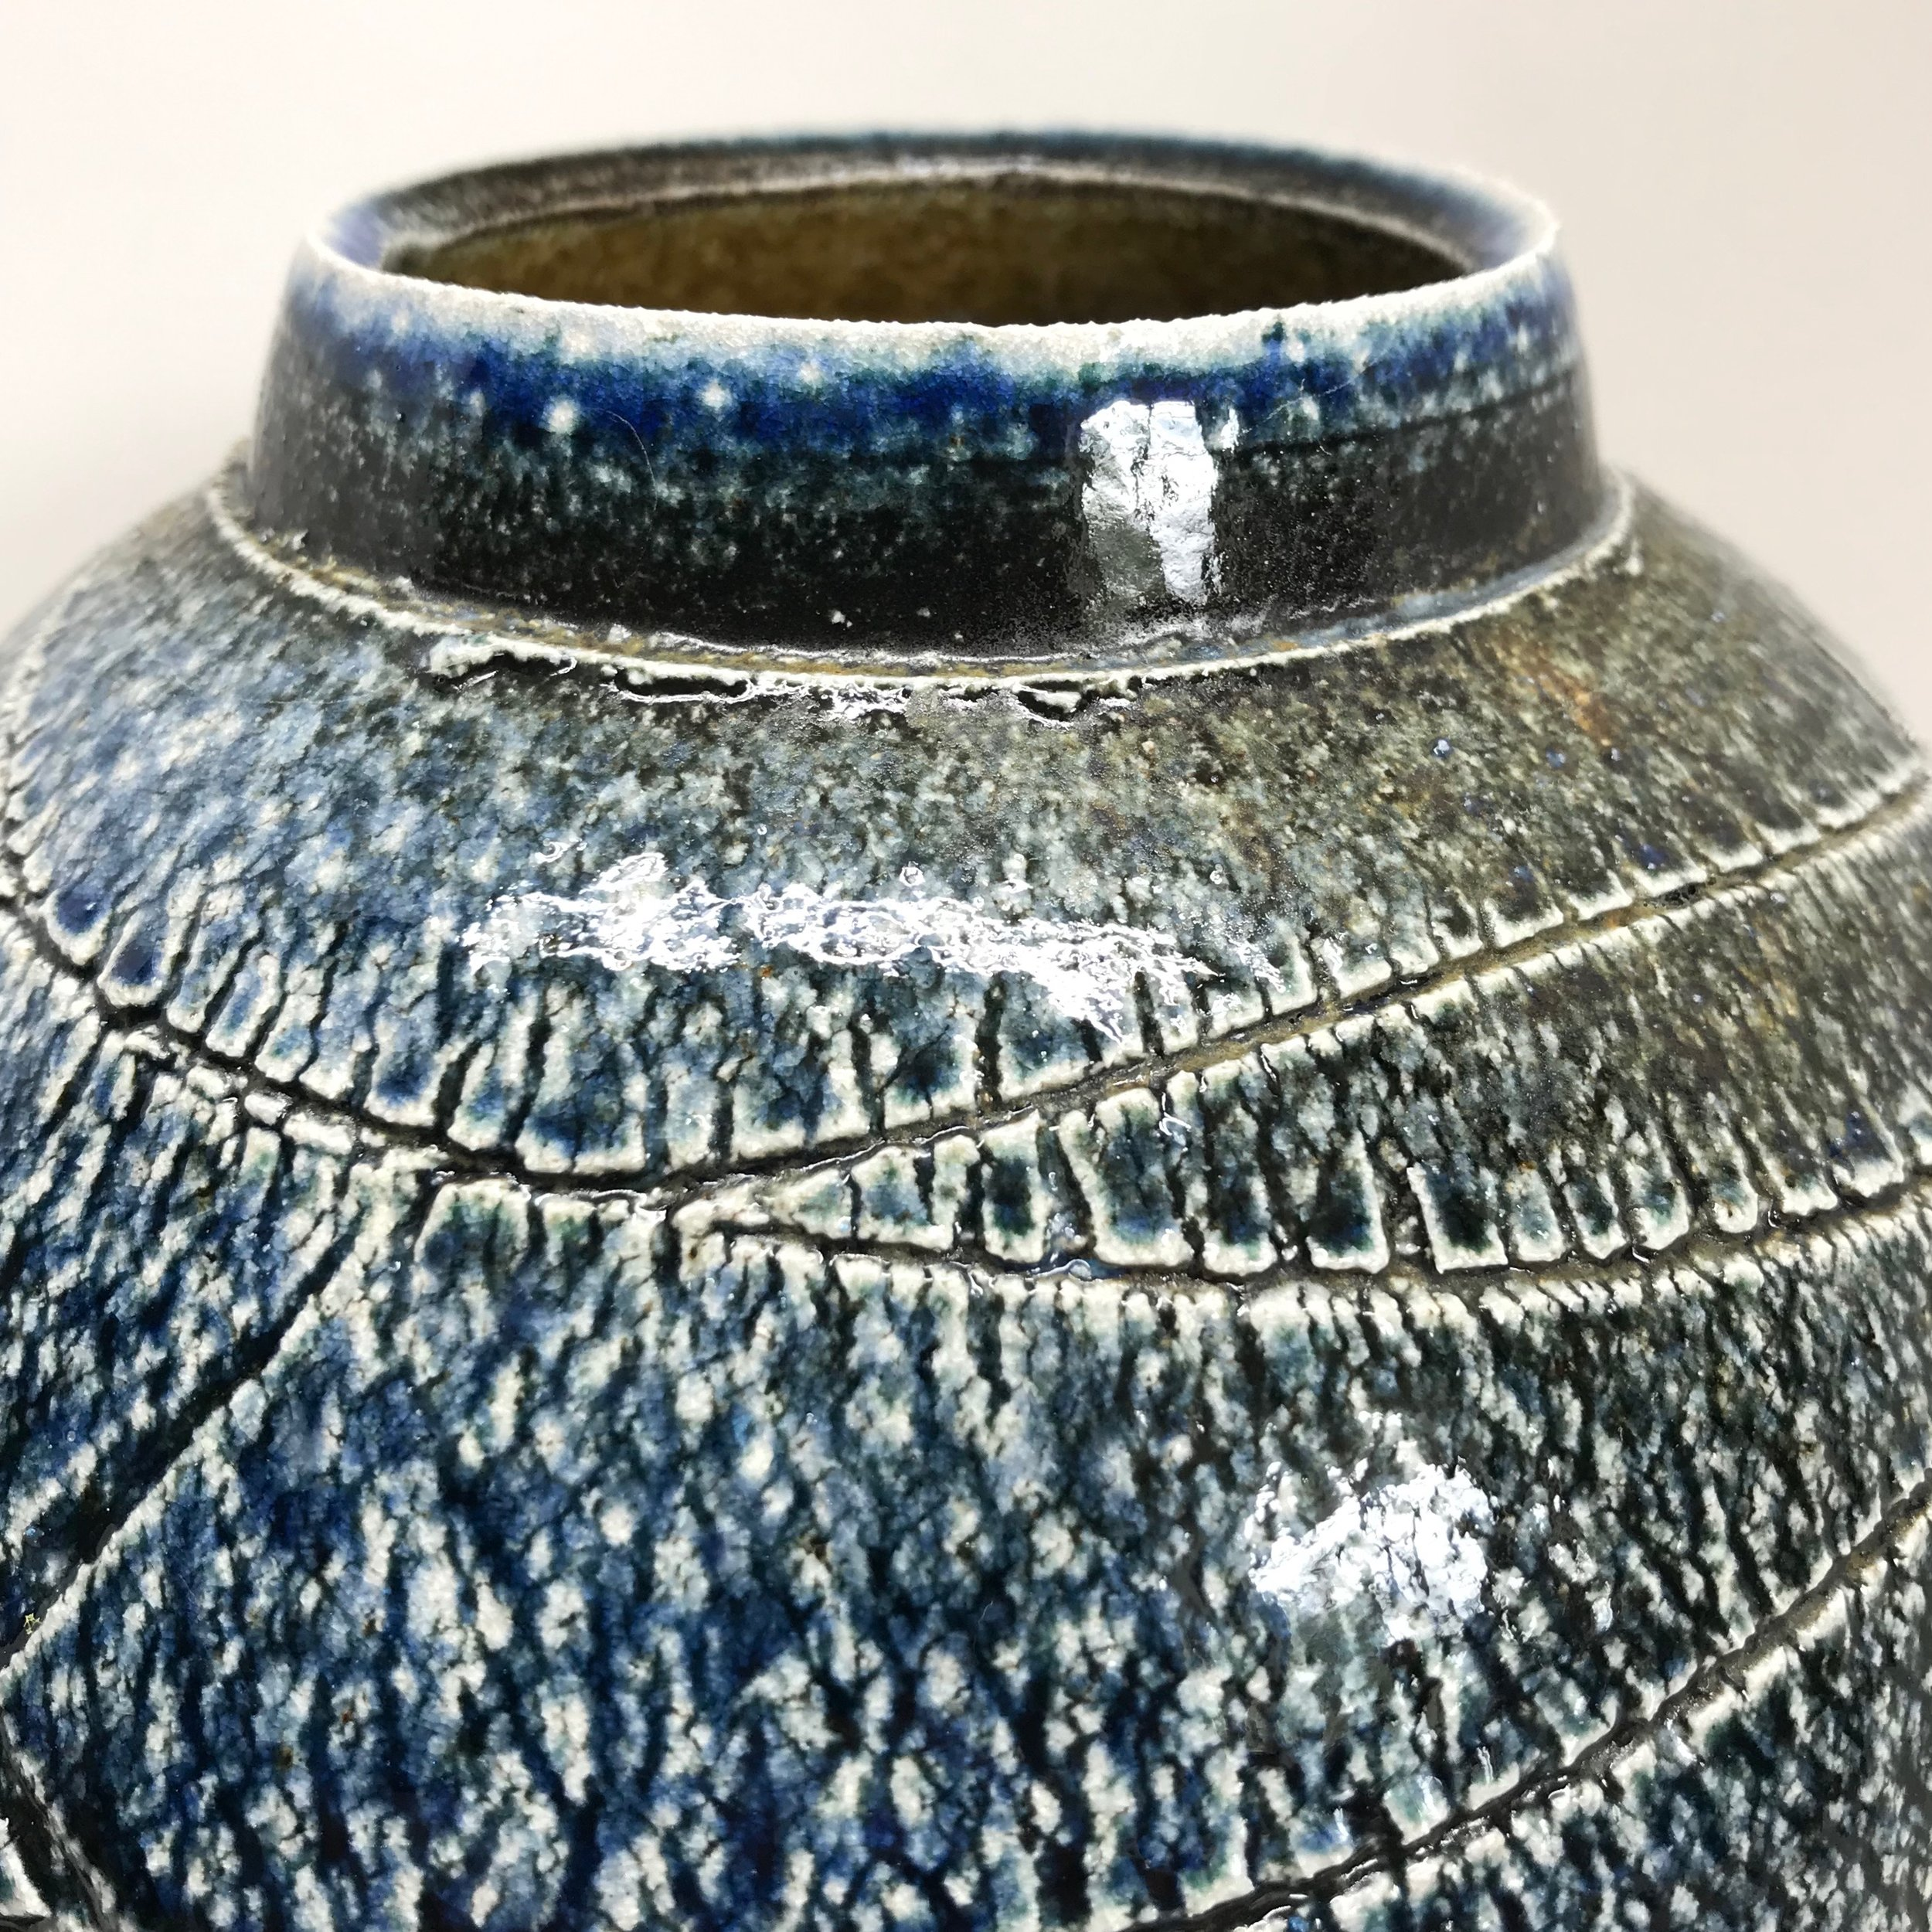 soda fired textured moon jar with wood ash